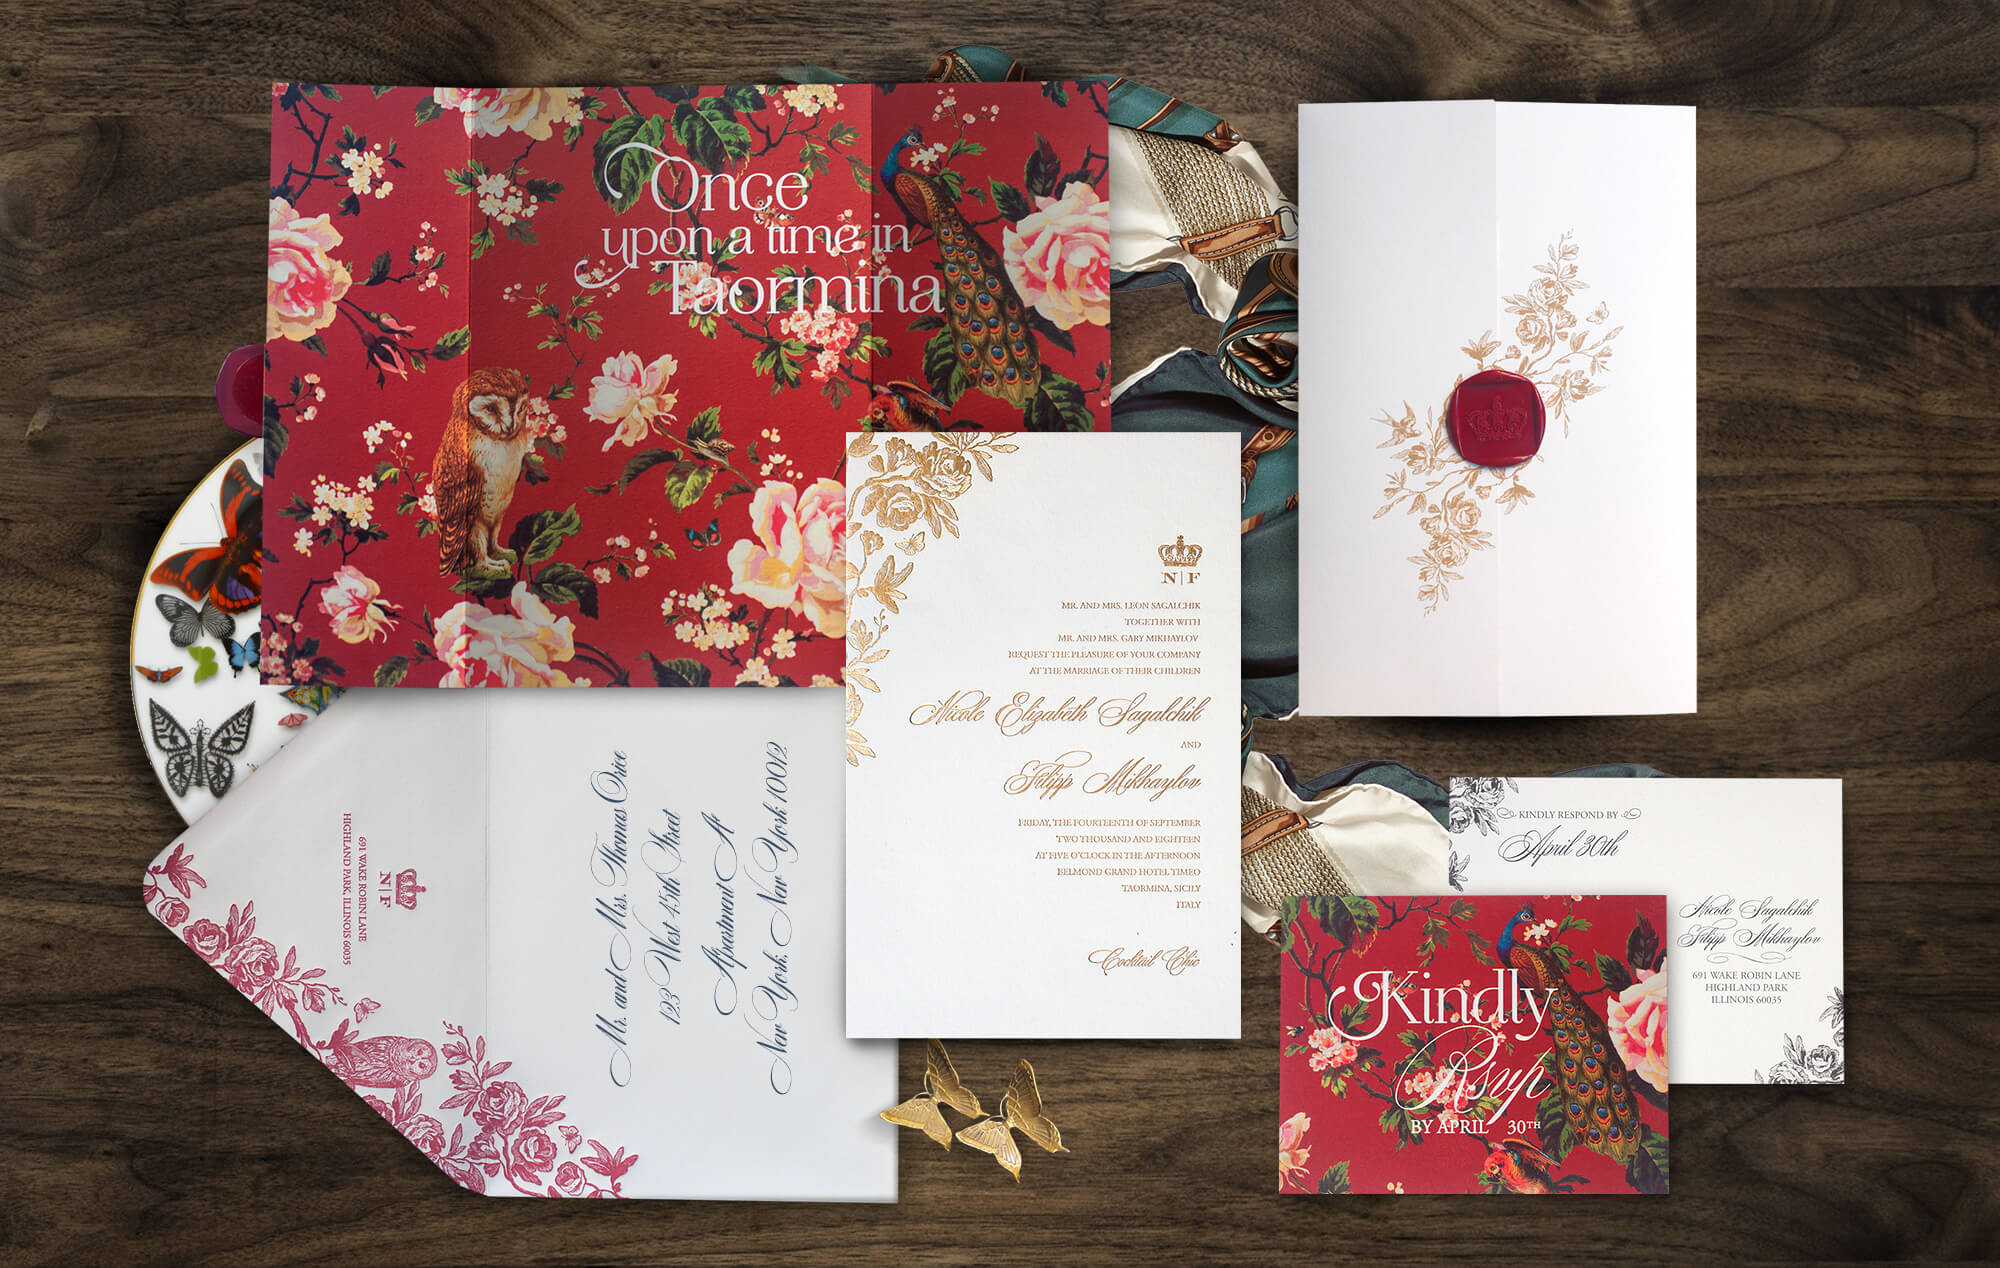 Sicily Italy wedding invitation